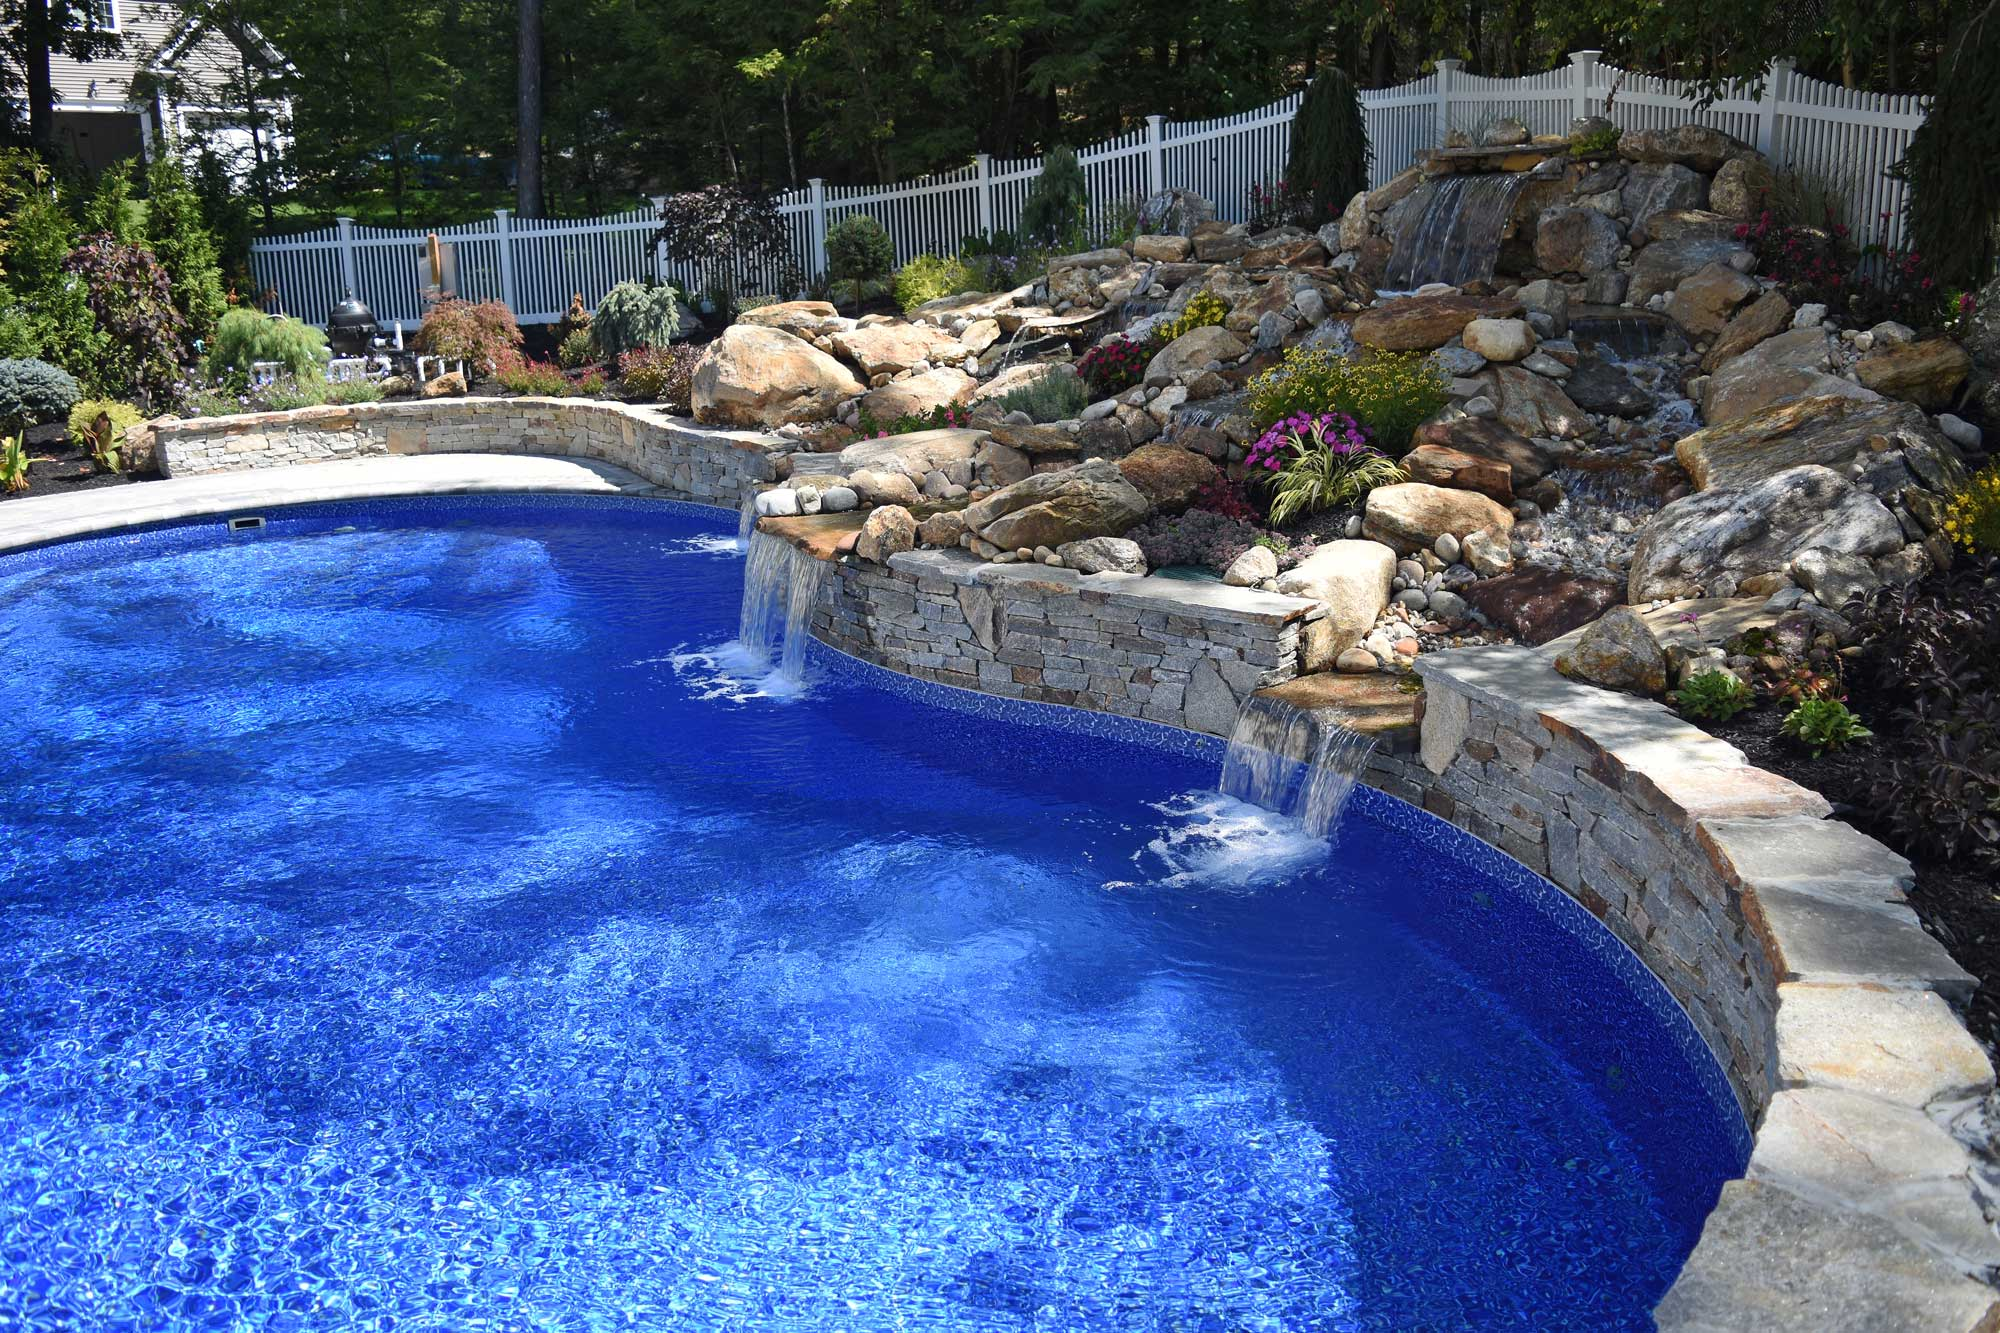 This is a photo of a custom inground swimming pool with two waterfalls.